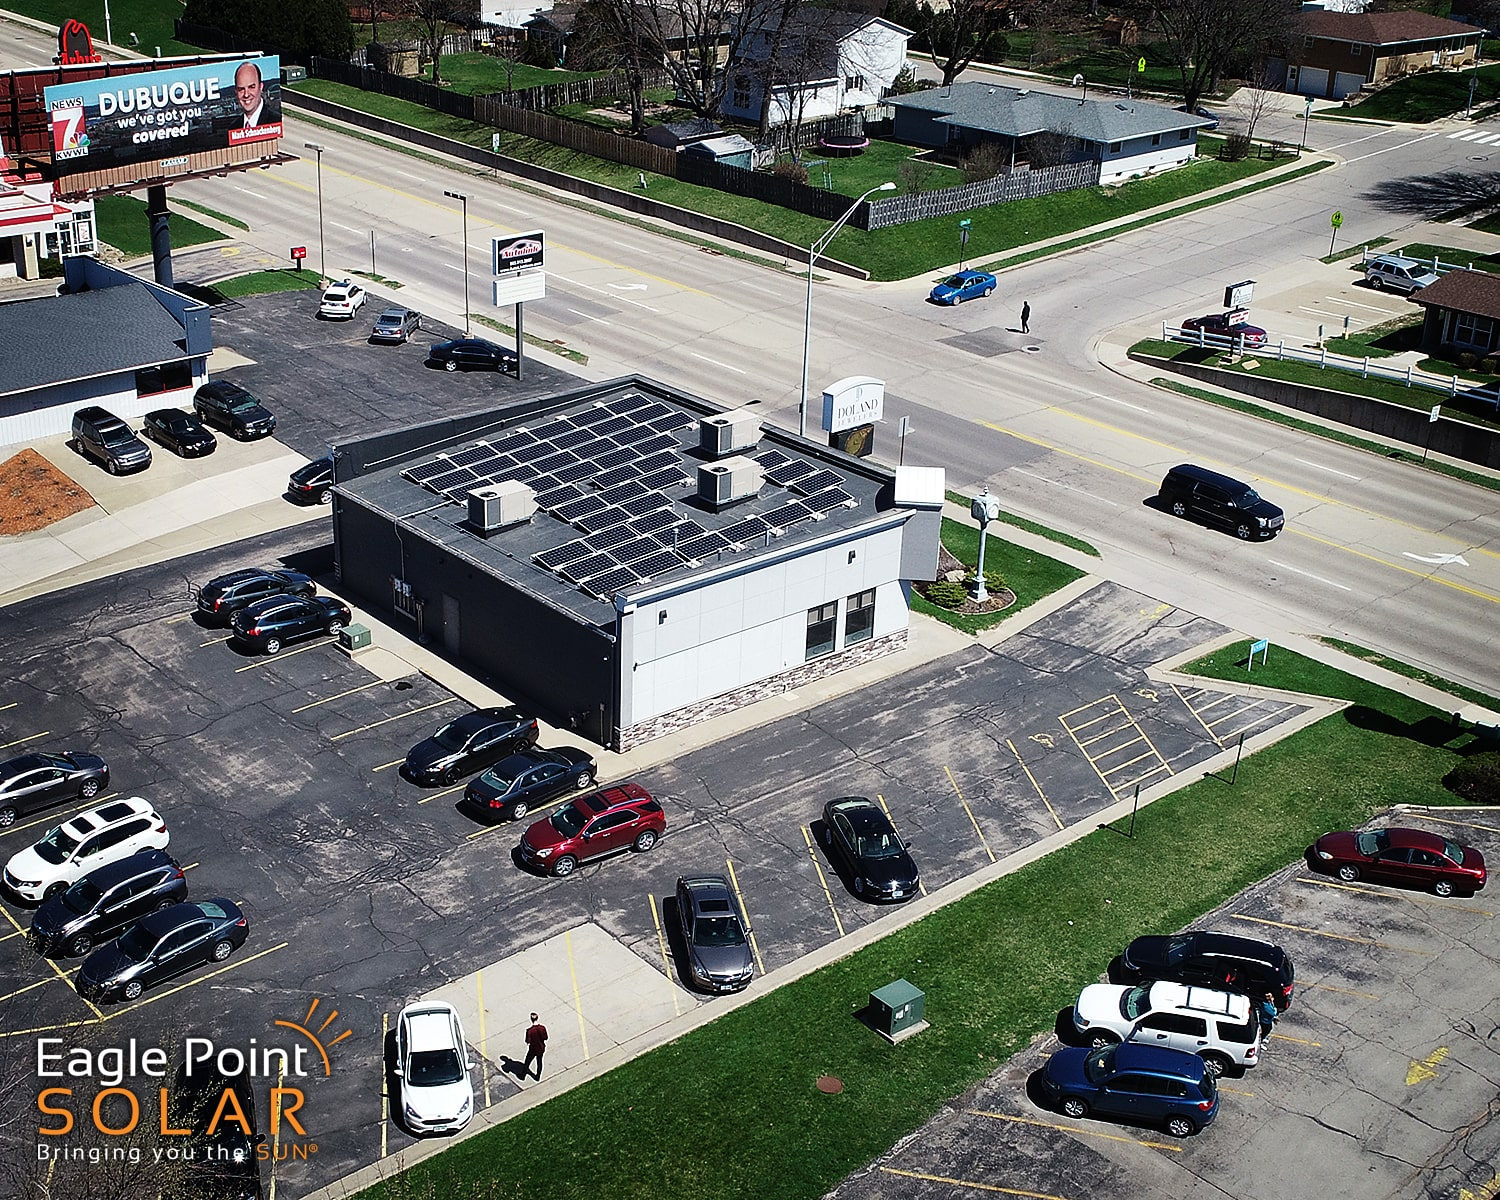 Photo of commercial roof mounted solar array on Doland Jewlers